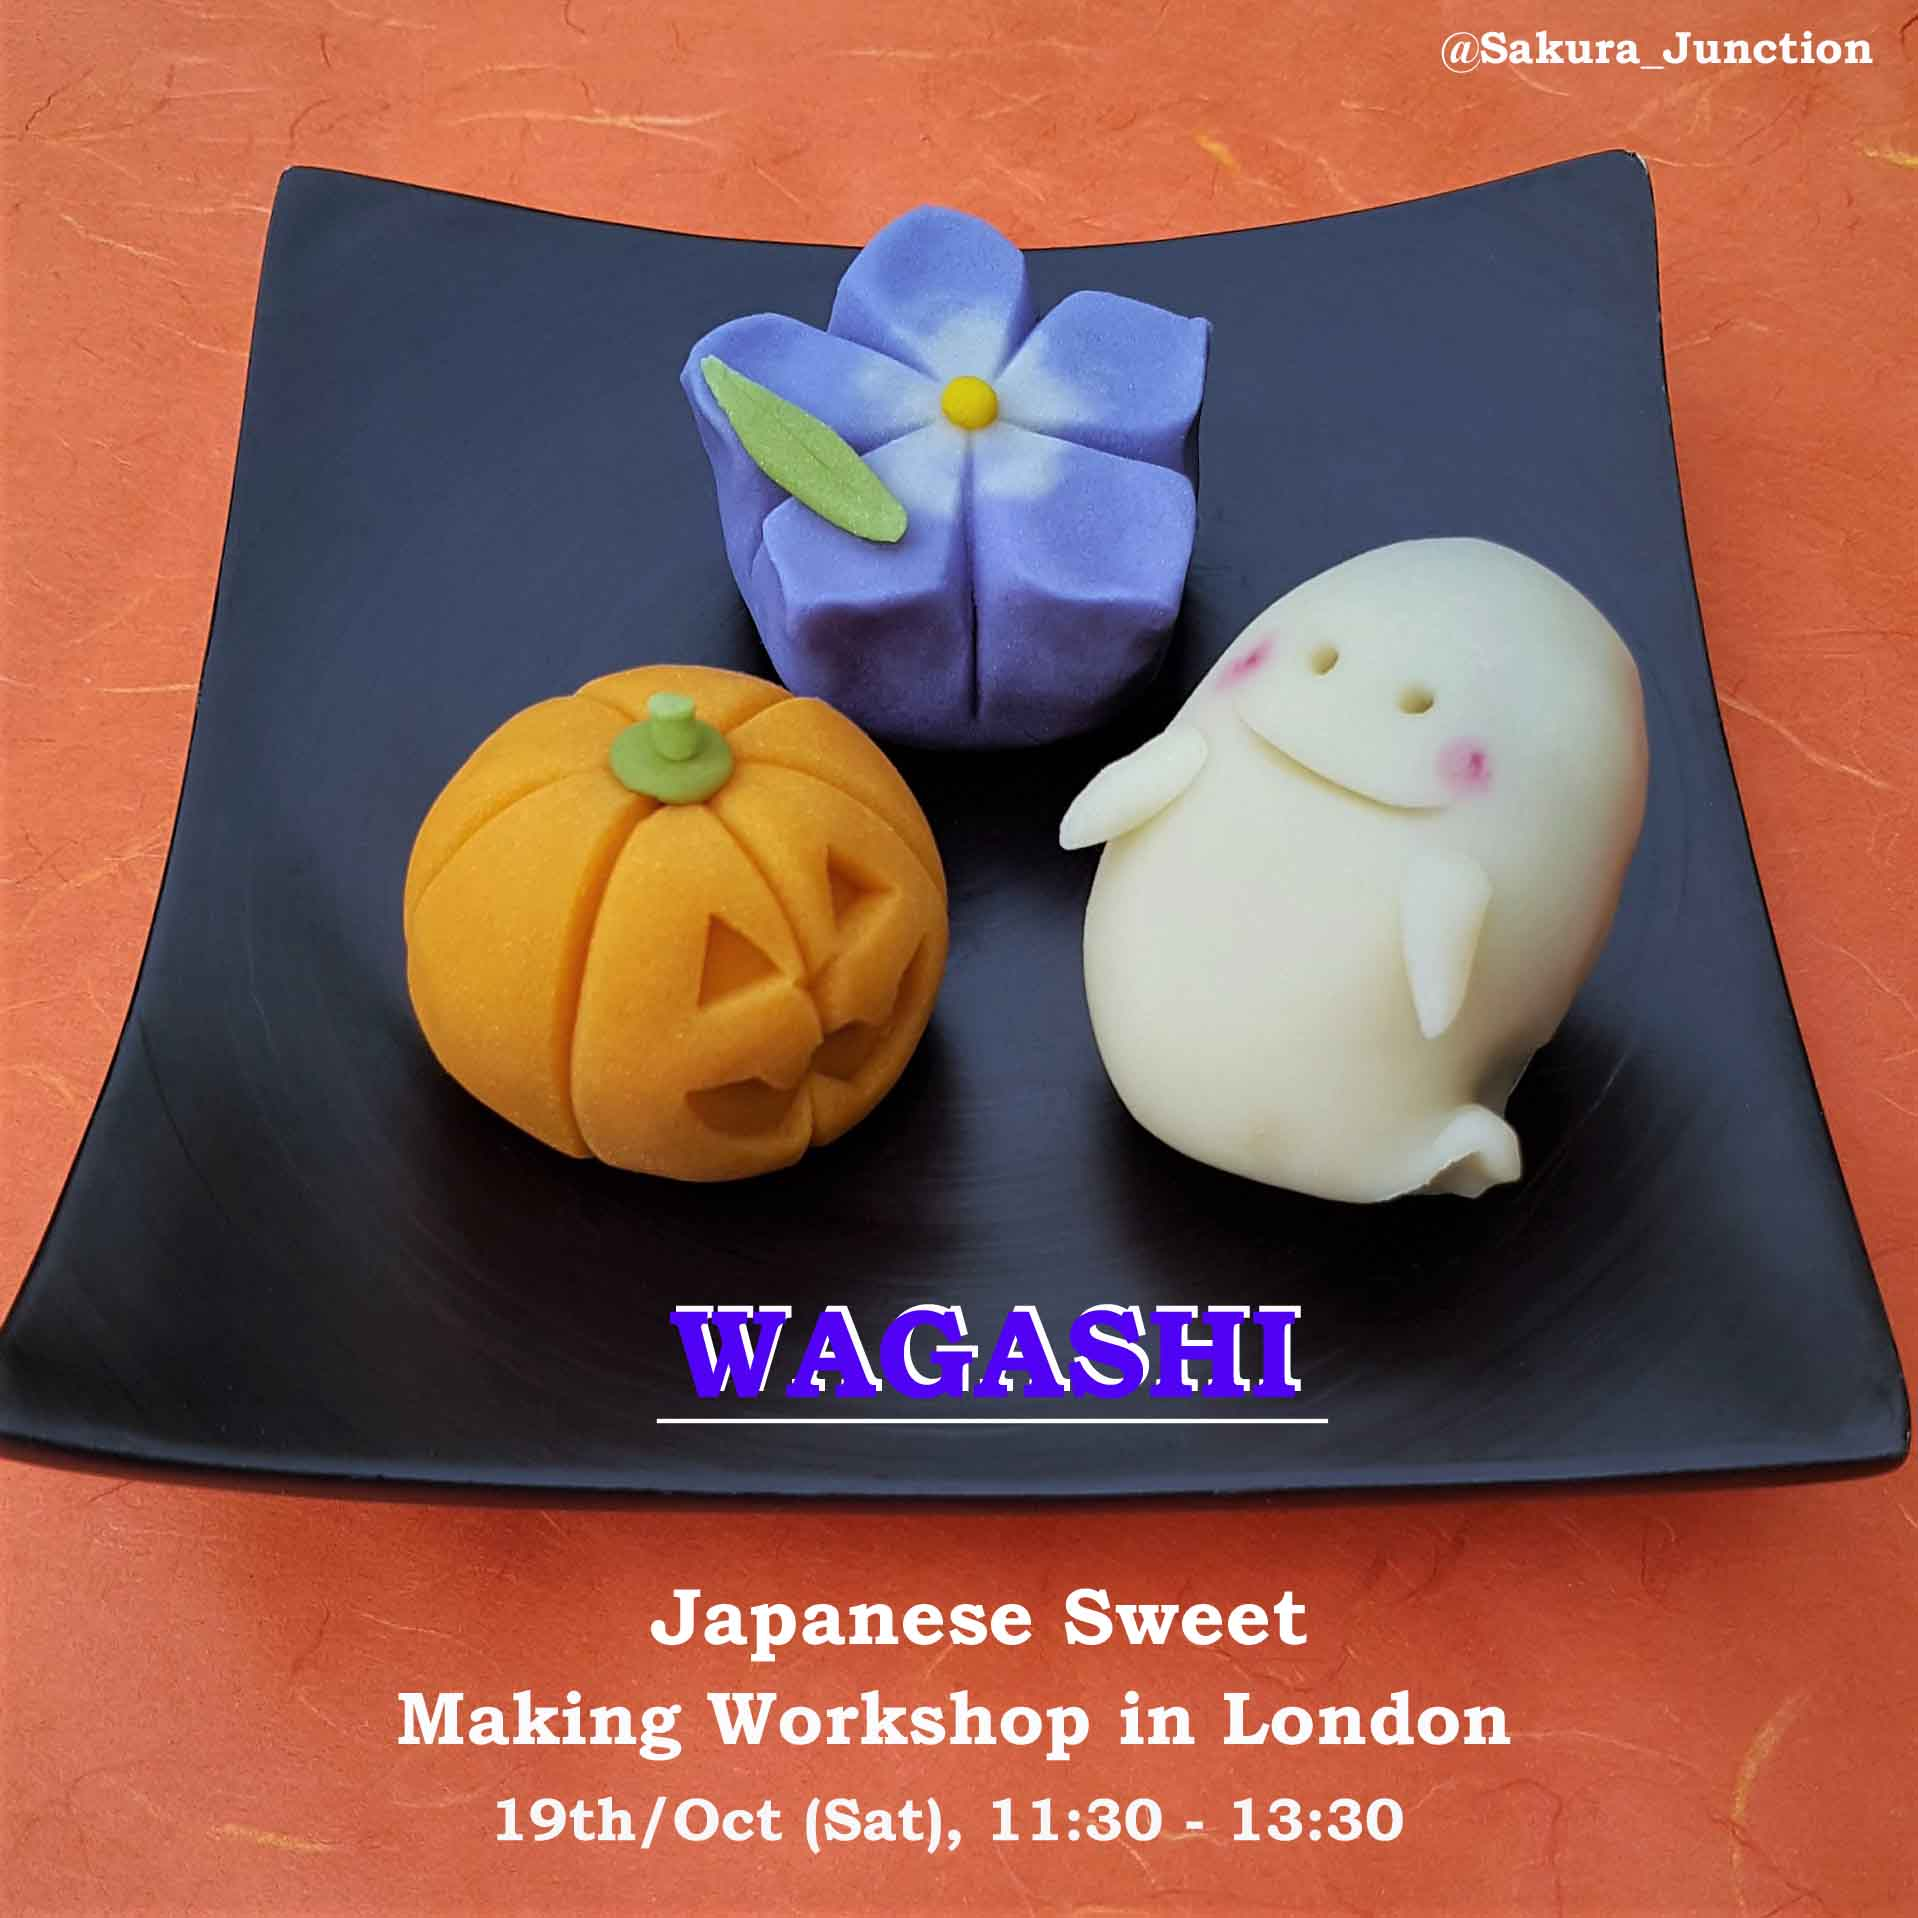 Japanese Sweet Making Workshop